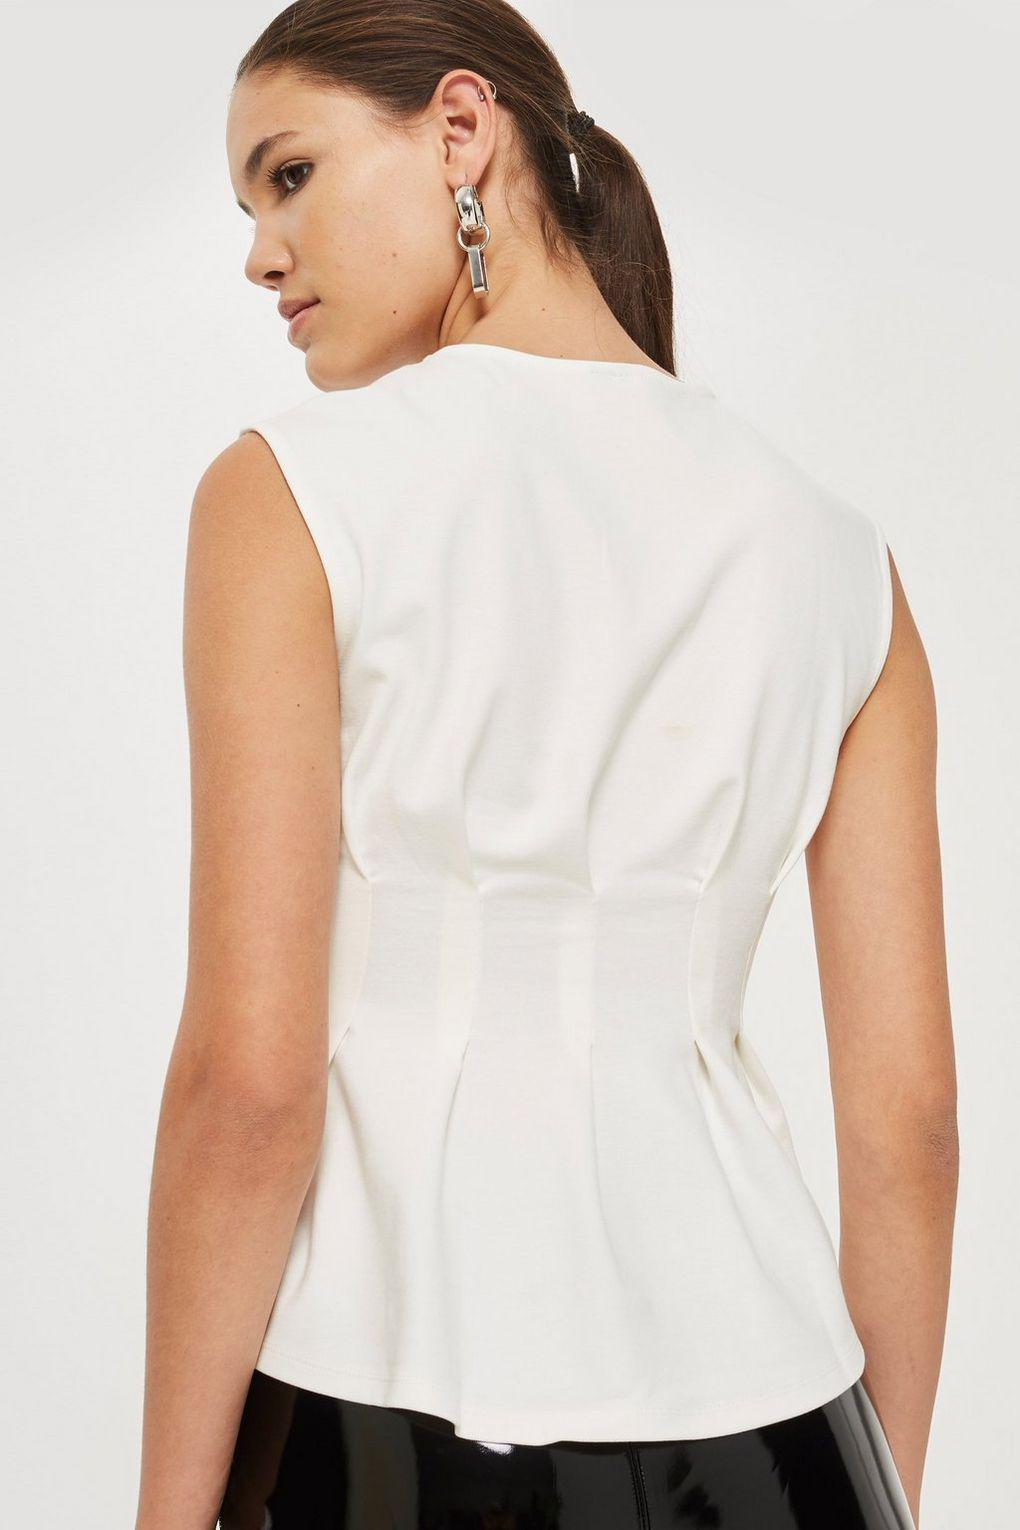 TOPSHOP Synthetic Cinched Waist Sleeveless Top in Cream (White)